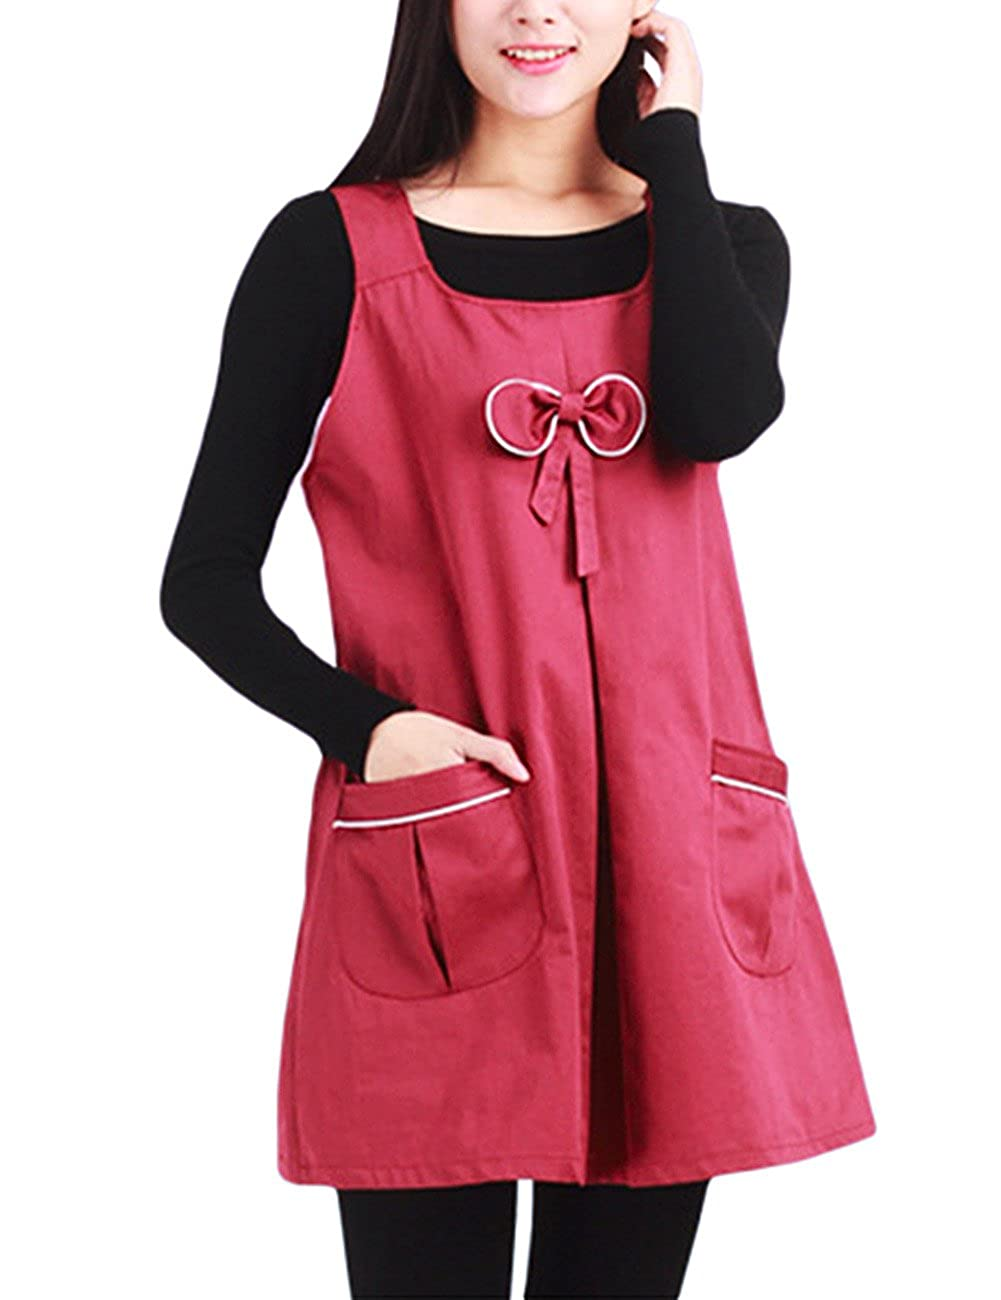 Lanlan Anti-Radiation Maternity Clothes Apron Tank Protection Shield Dresses PD-LCL-20170717-8-06